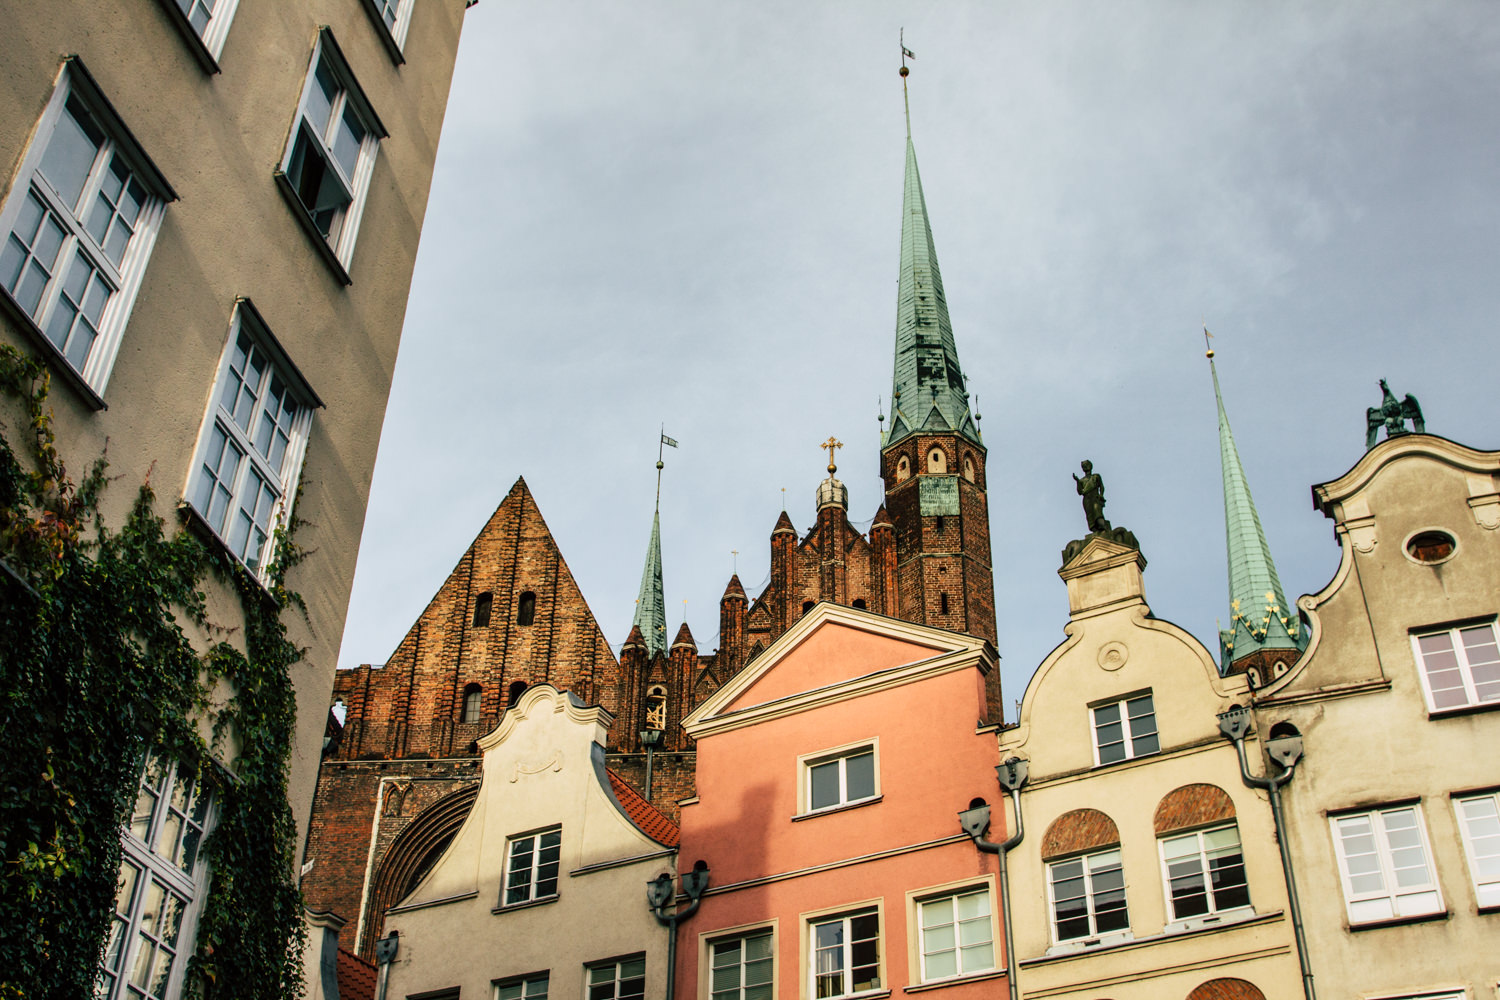 Gdansk Royal Route with colourful facades